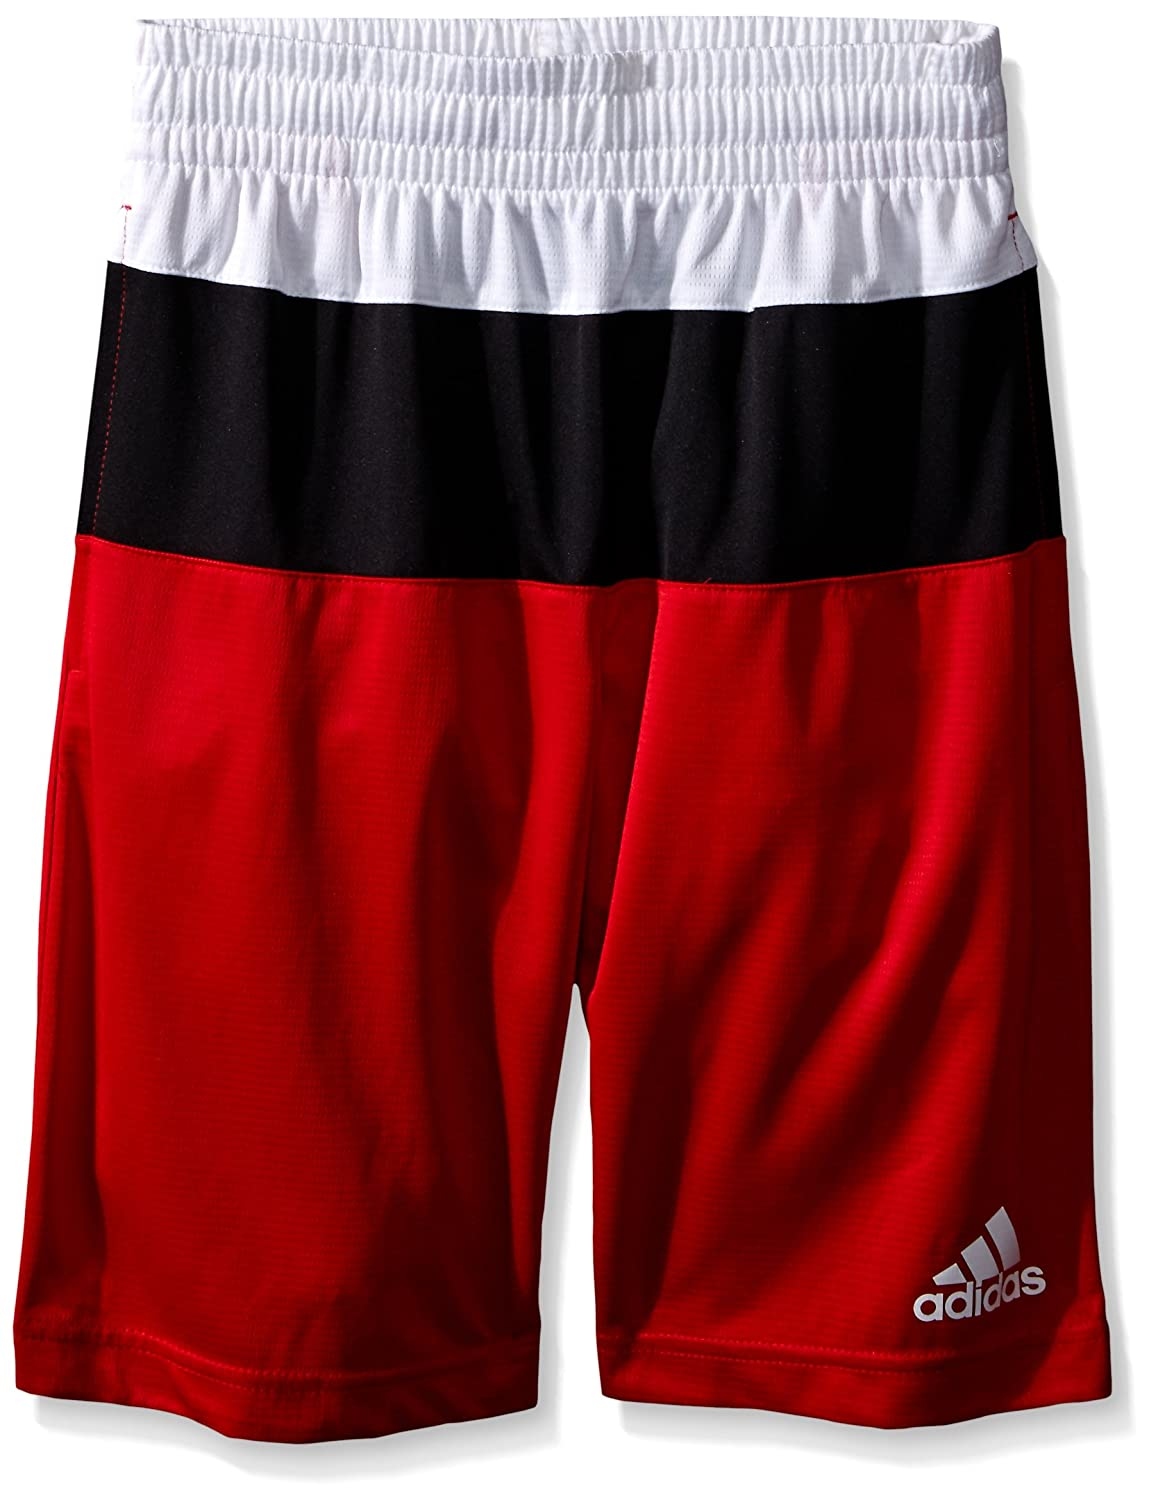 adidas Boys' Active Short adidas Children' s Apparel (Outerstuff) BABANUJ9